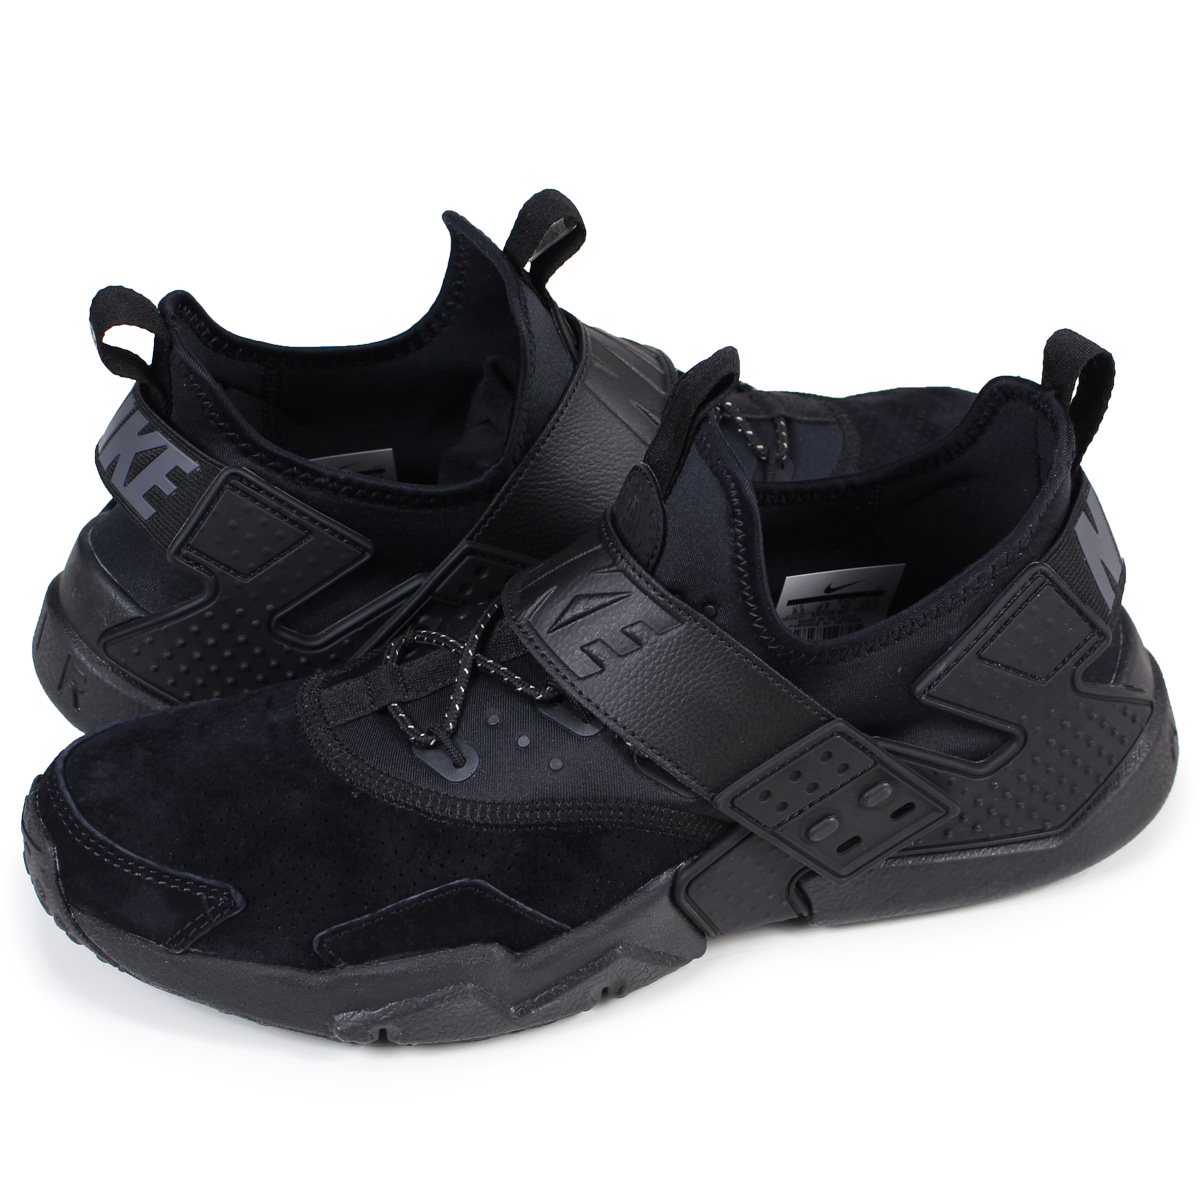 febaadcefa4d NIKE AIR HUARACHE DRIFT PREMIUM ナイキエアハラチドリフトスニーカー AH7335-001 men black   load planned Shinnyu load in reservation product 1 23 containing